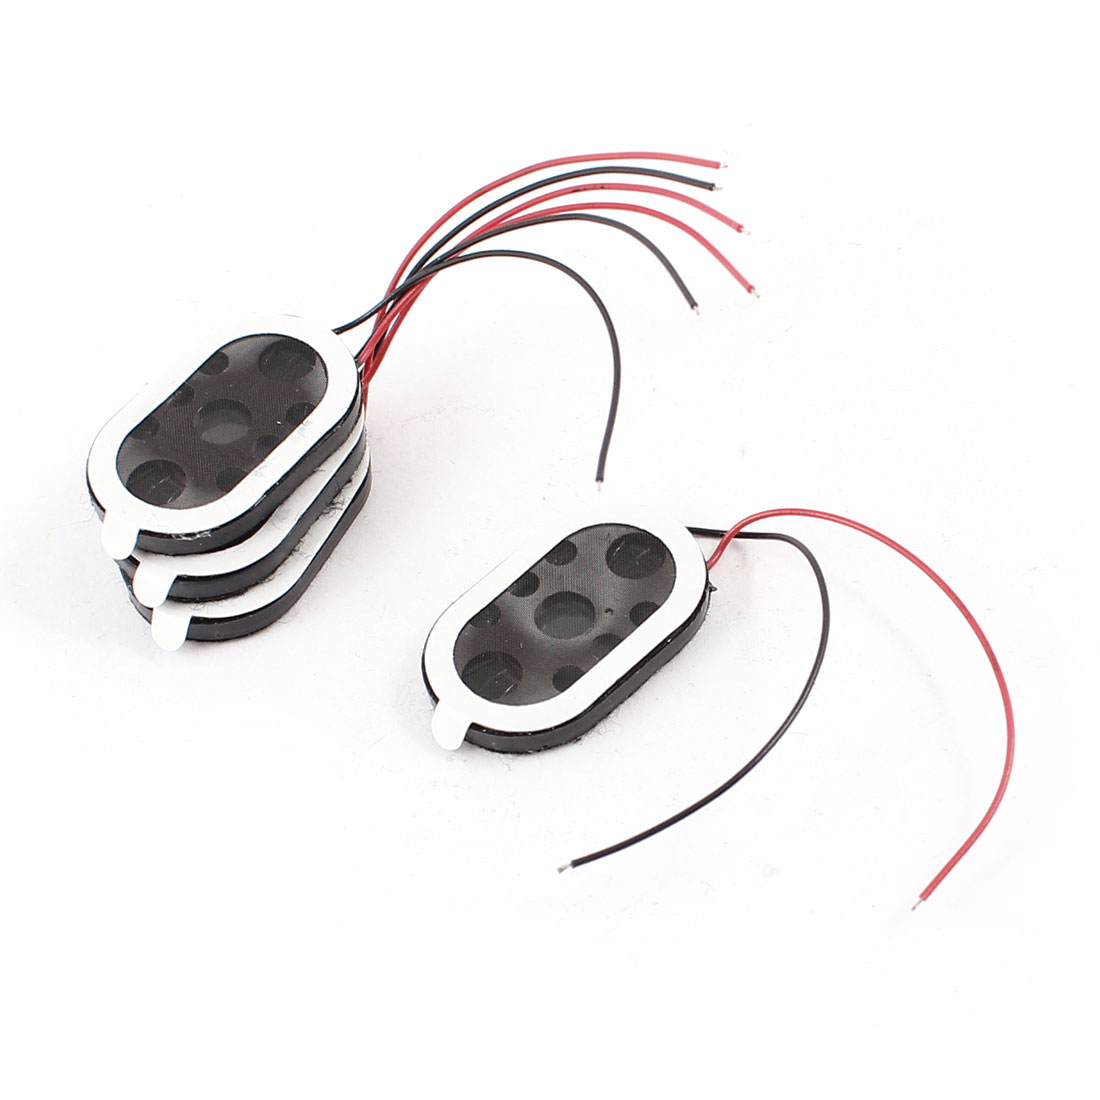 4 Pcs 1W 8 Ohm 15x24mm Magnet Speaker Loudspeaker Horn for Vido N70 N12 Tablet